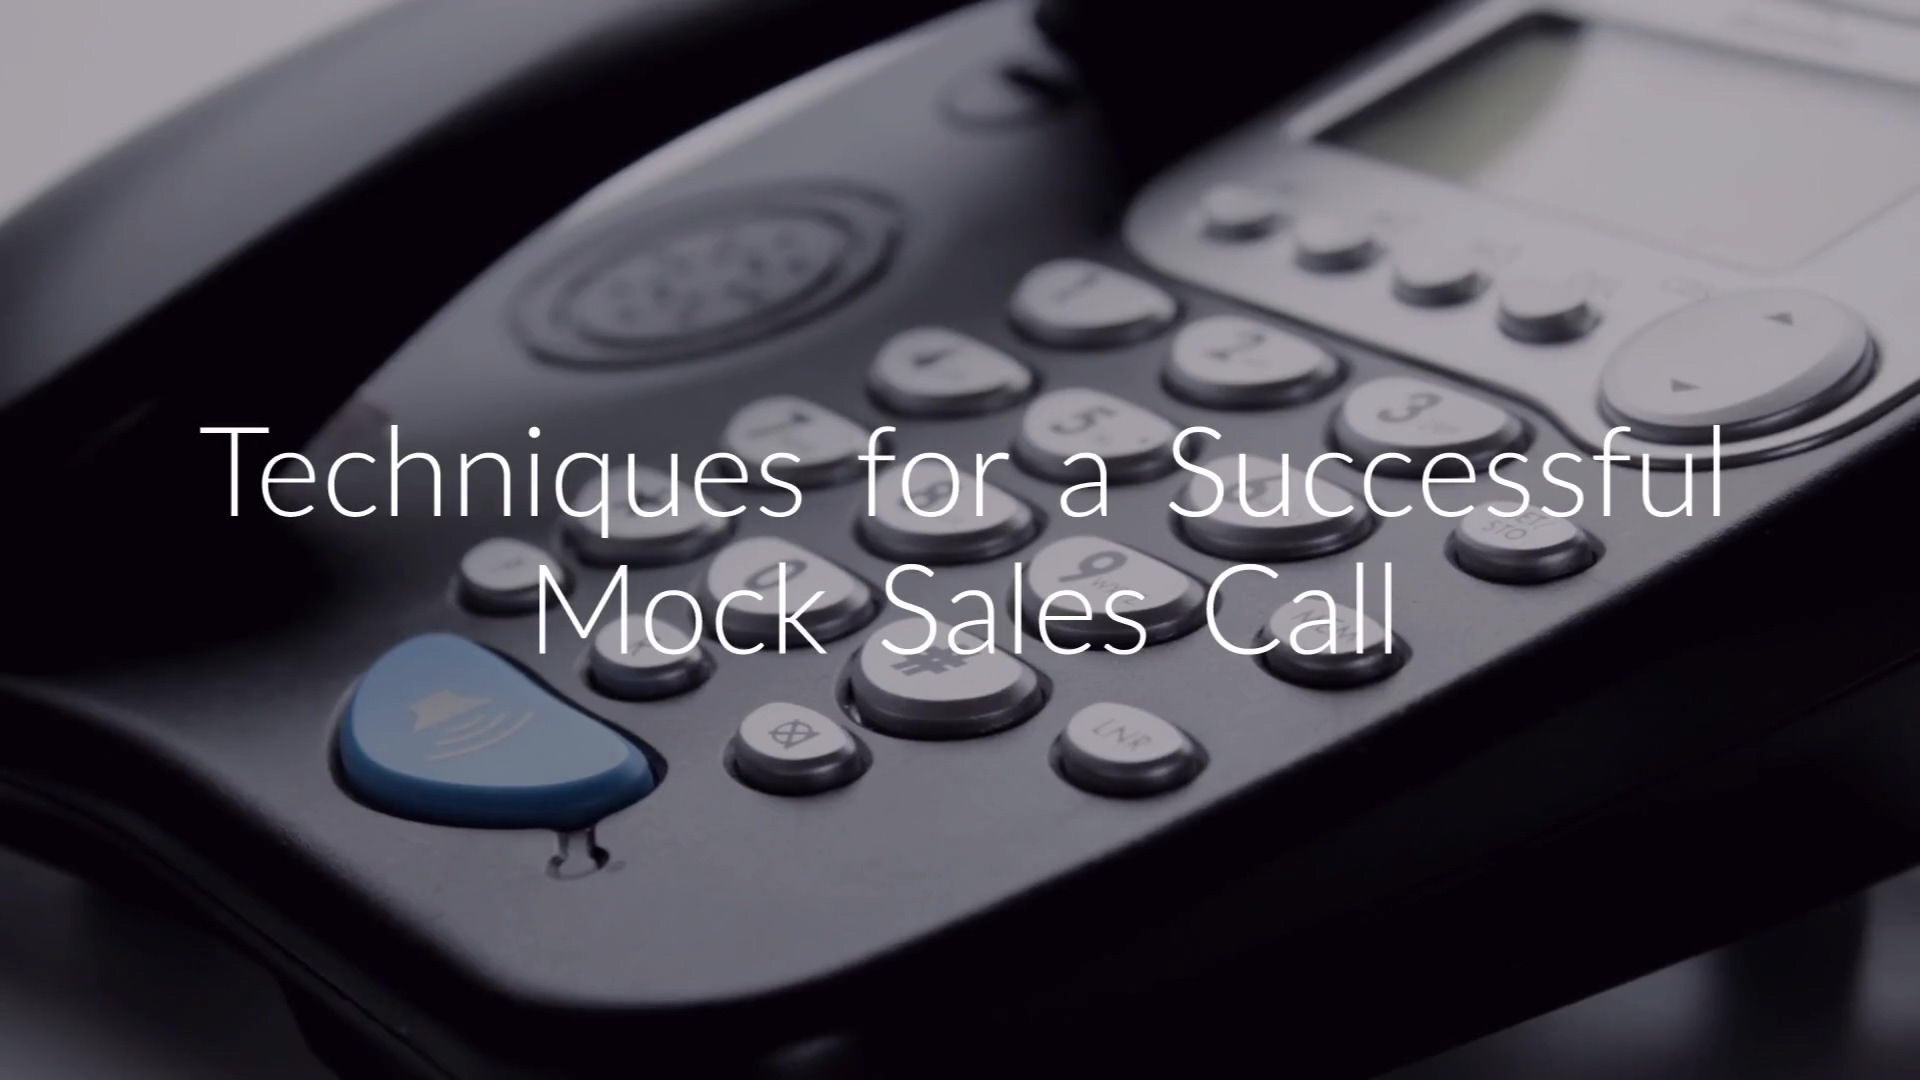 mock-sales-call (2)